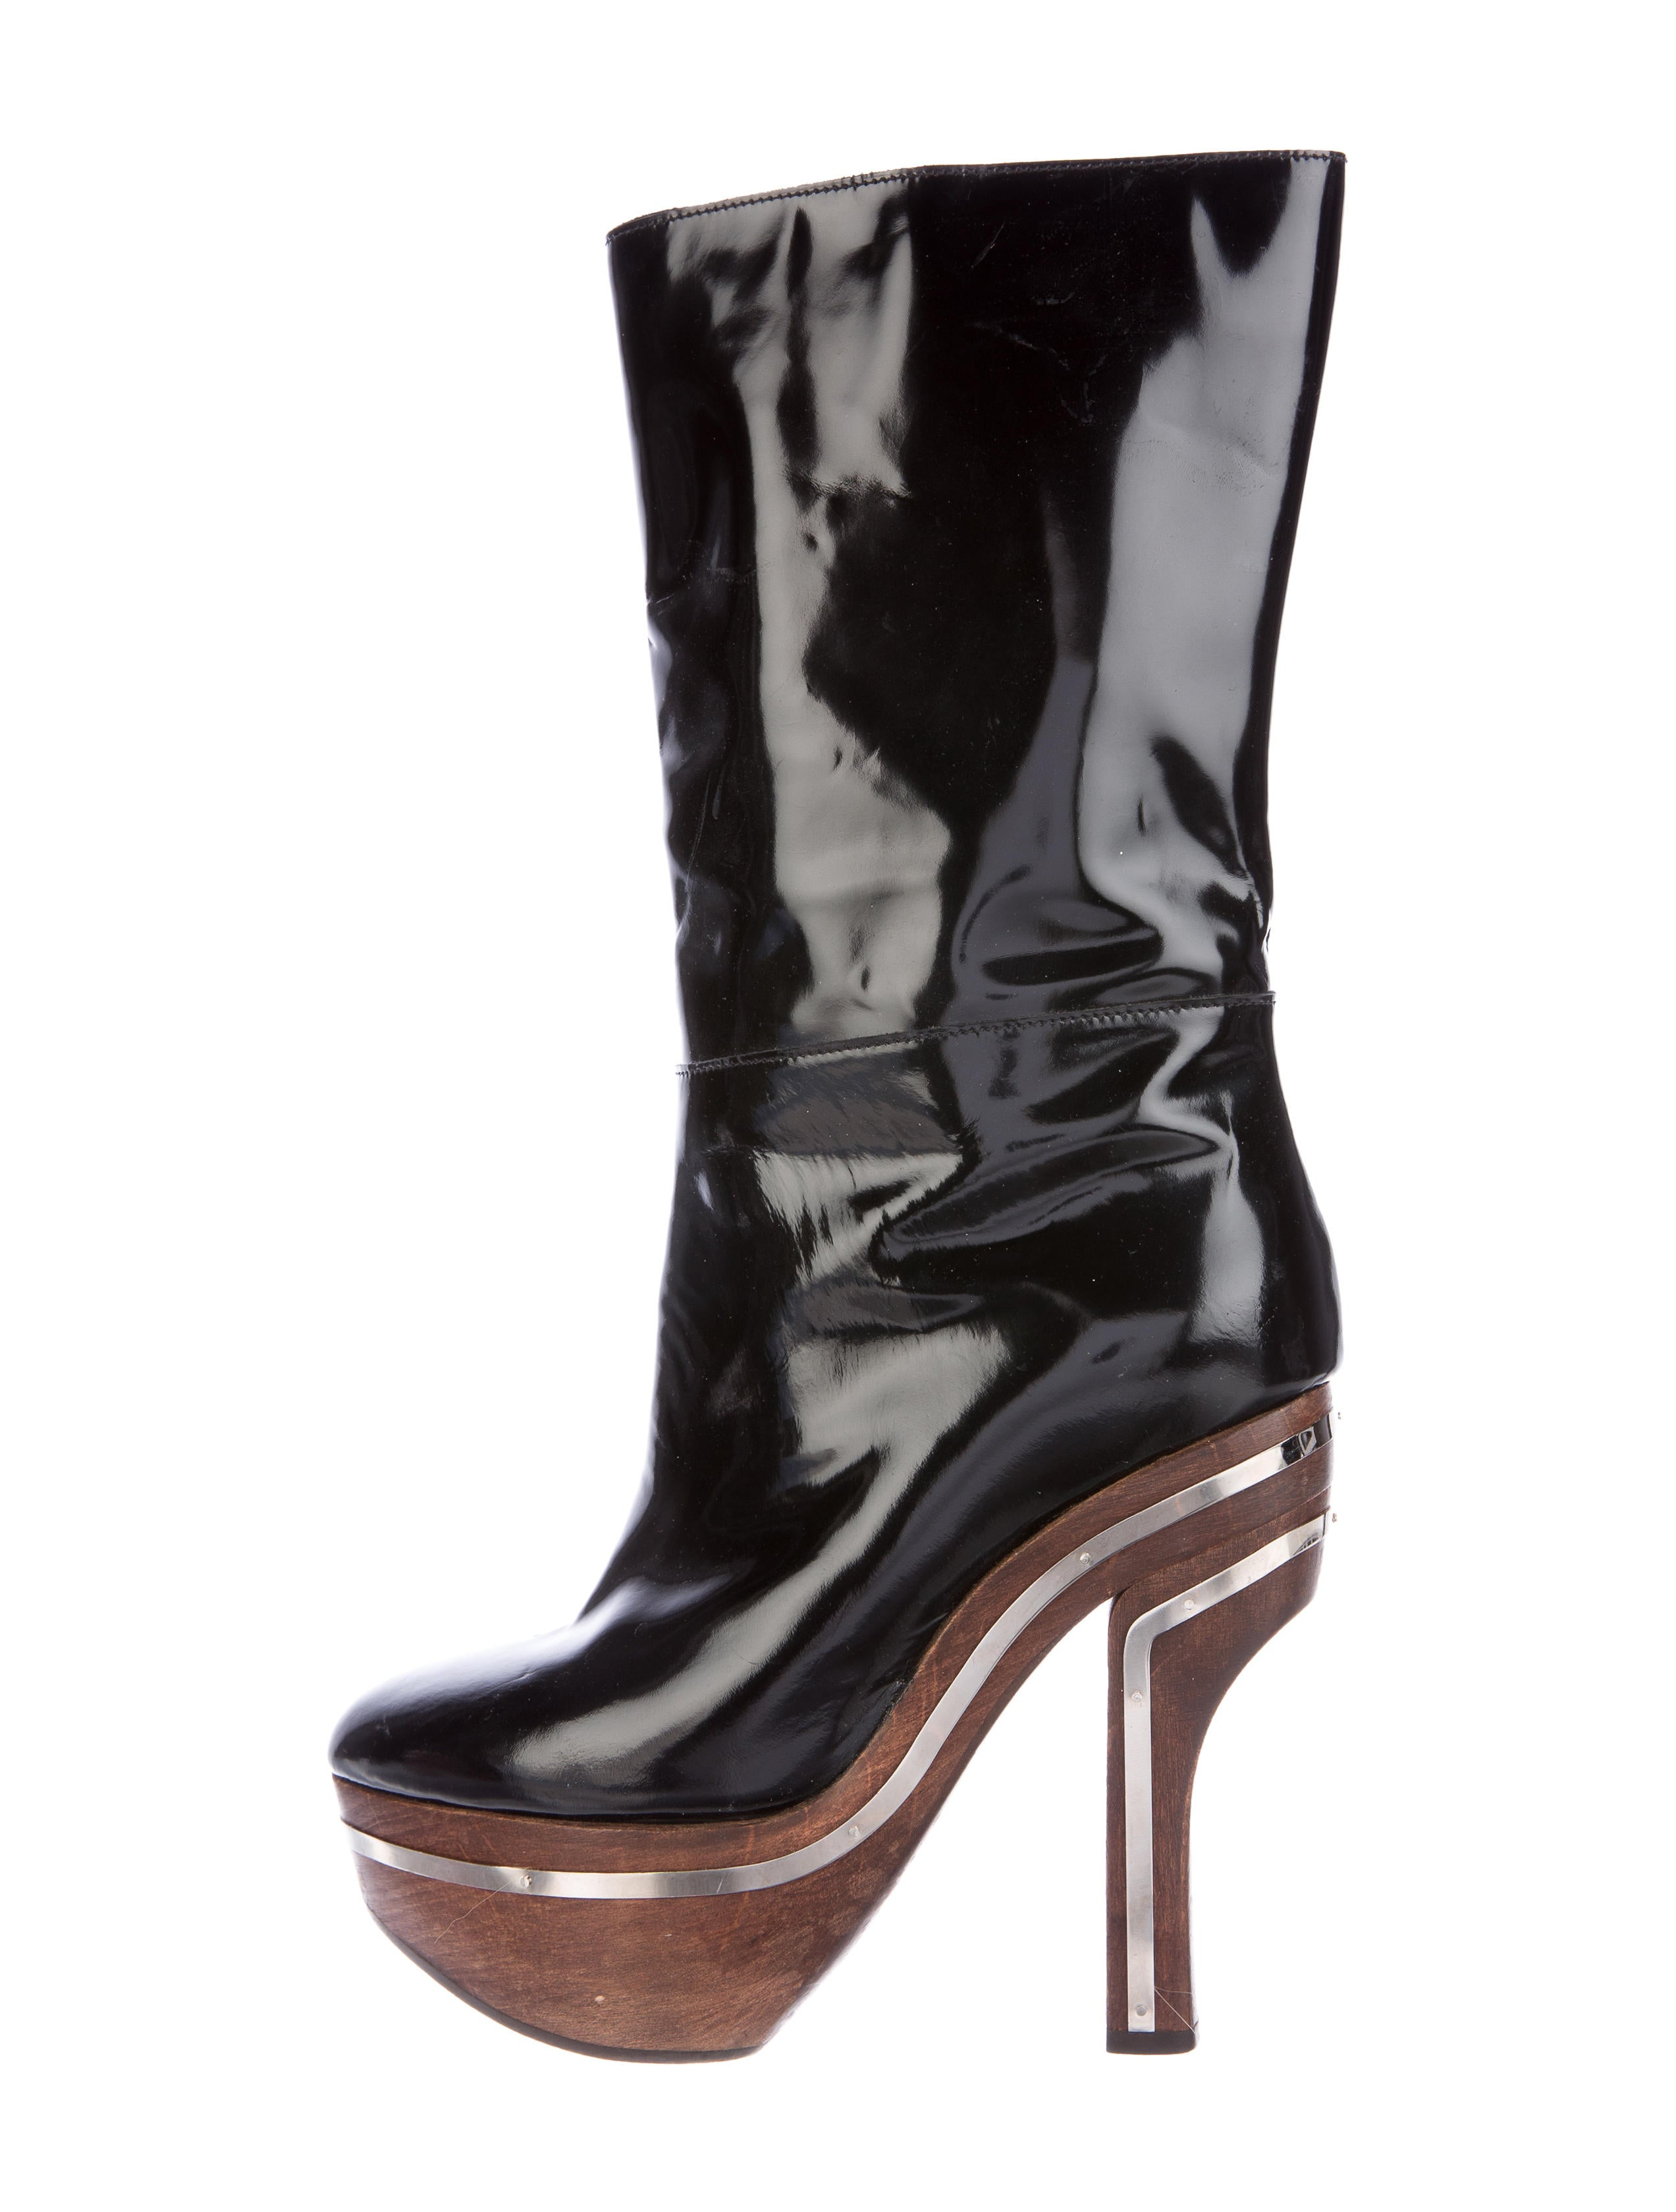 We have thigh high, crotch boots as well as chap boots in various colors and heel heights. Every fashionista should have at least one pair of thigh-highs in her closet! 5